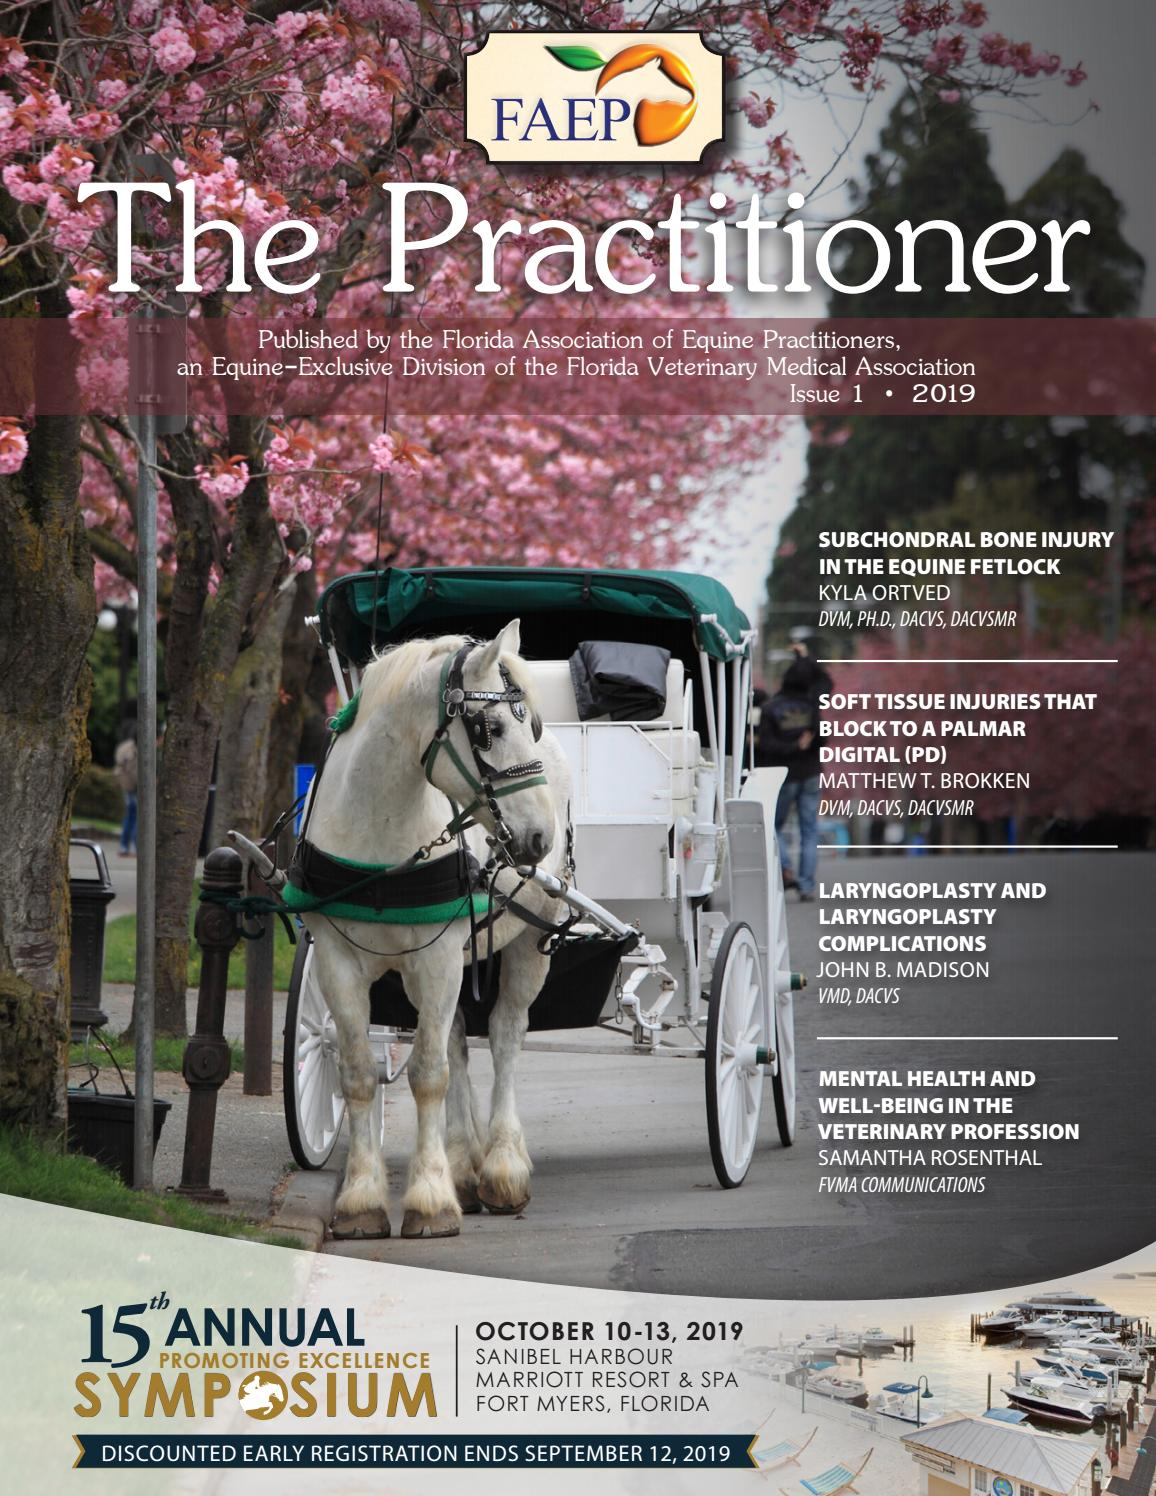 FAEP Practitioner Issue 1, 2019 by FVMA - issuu